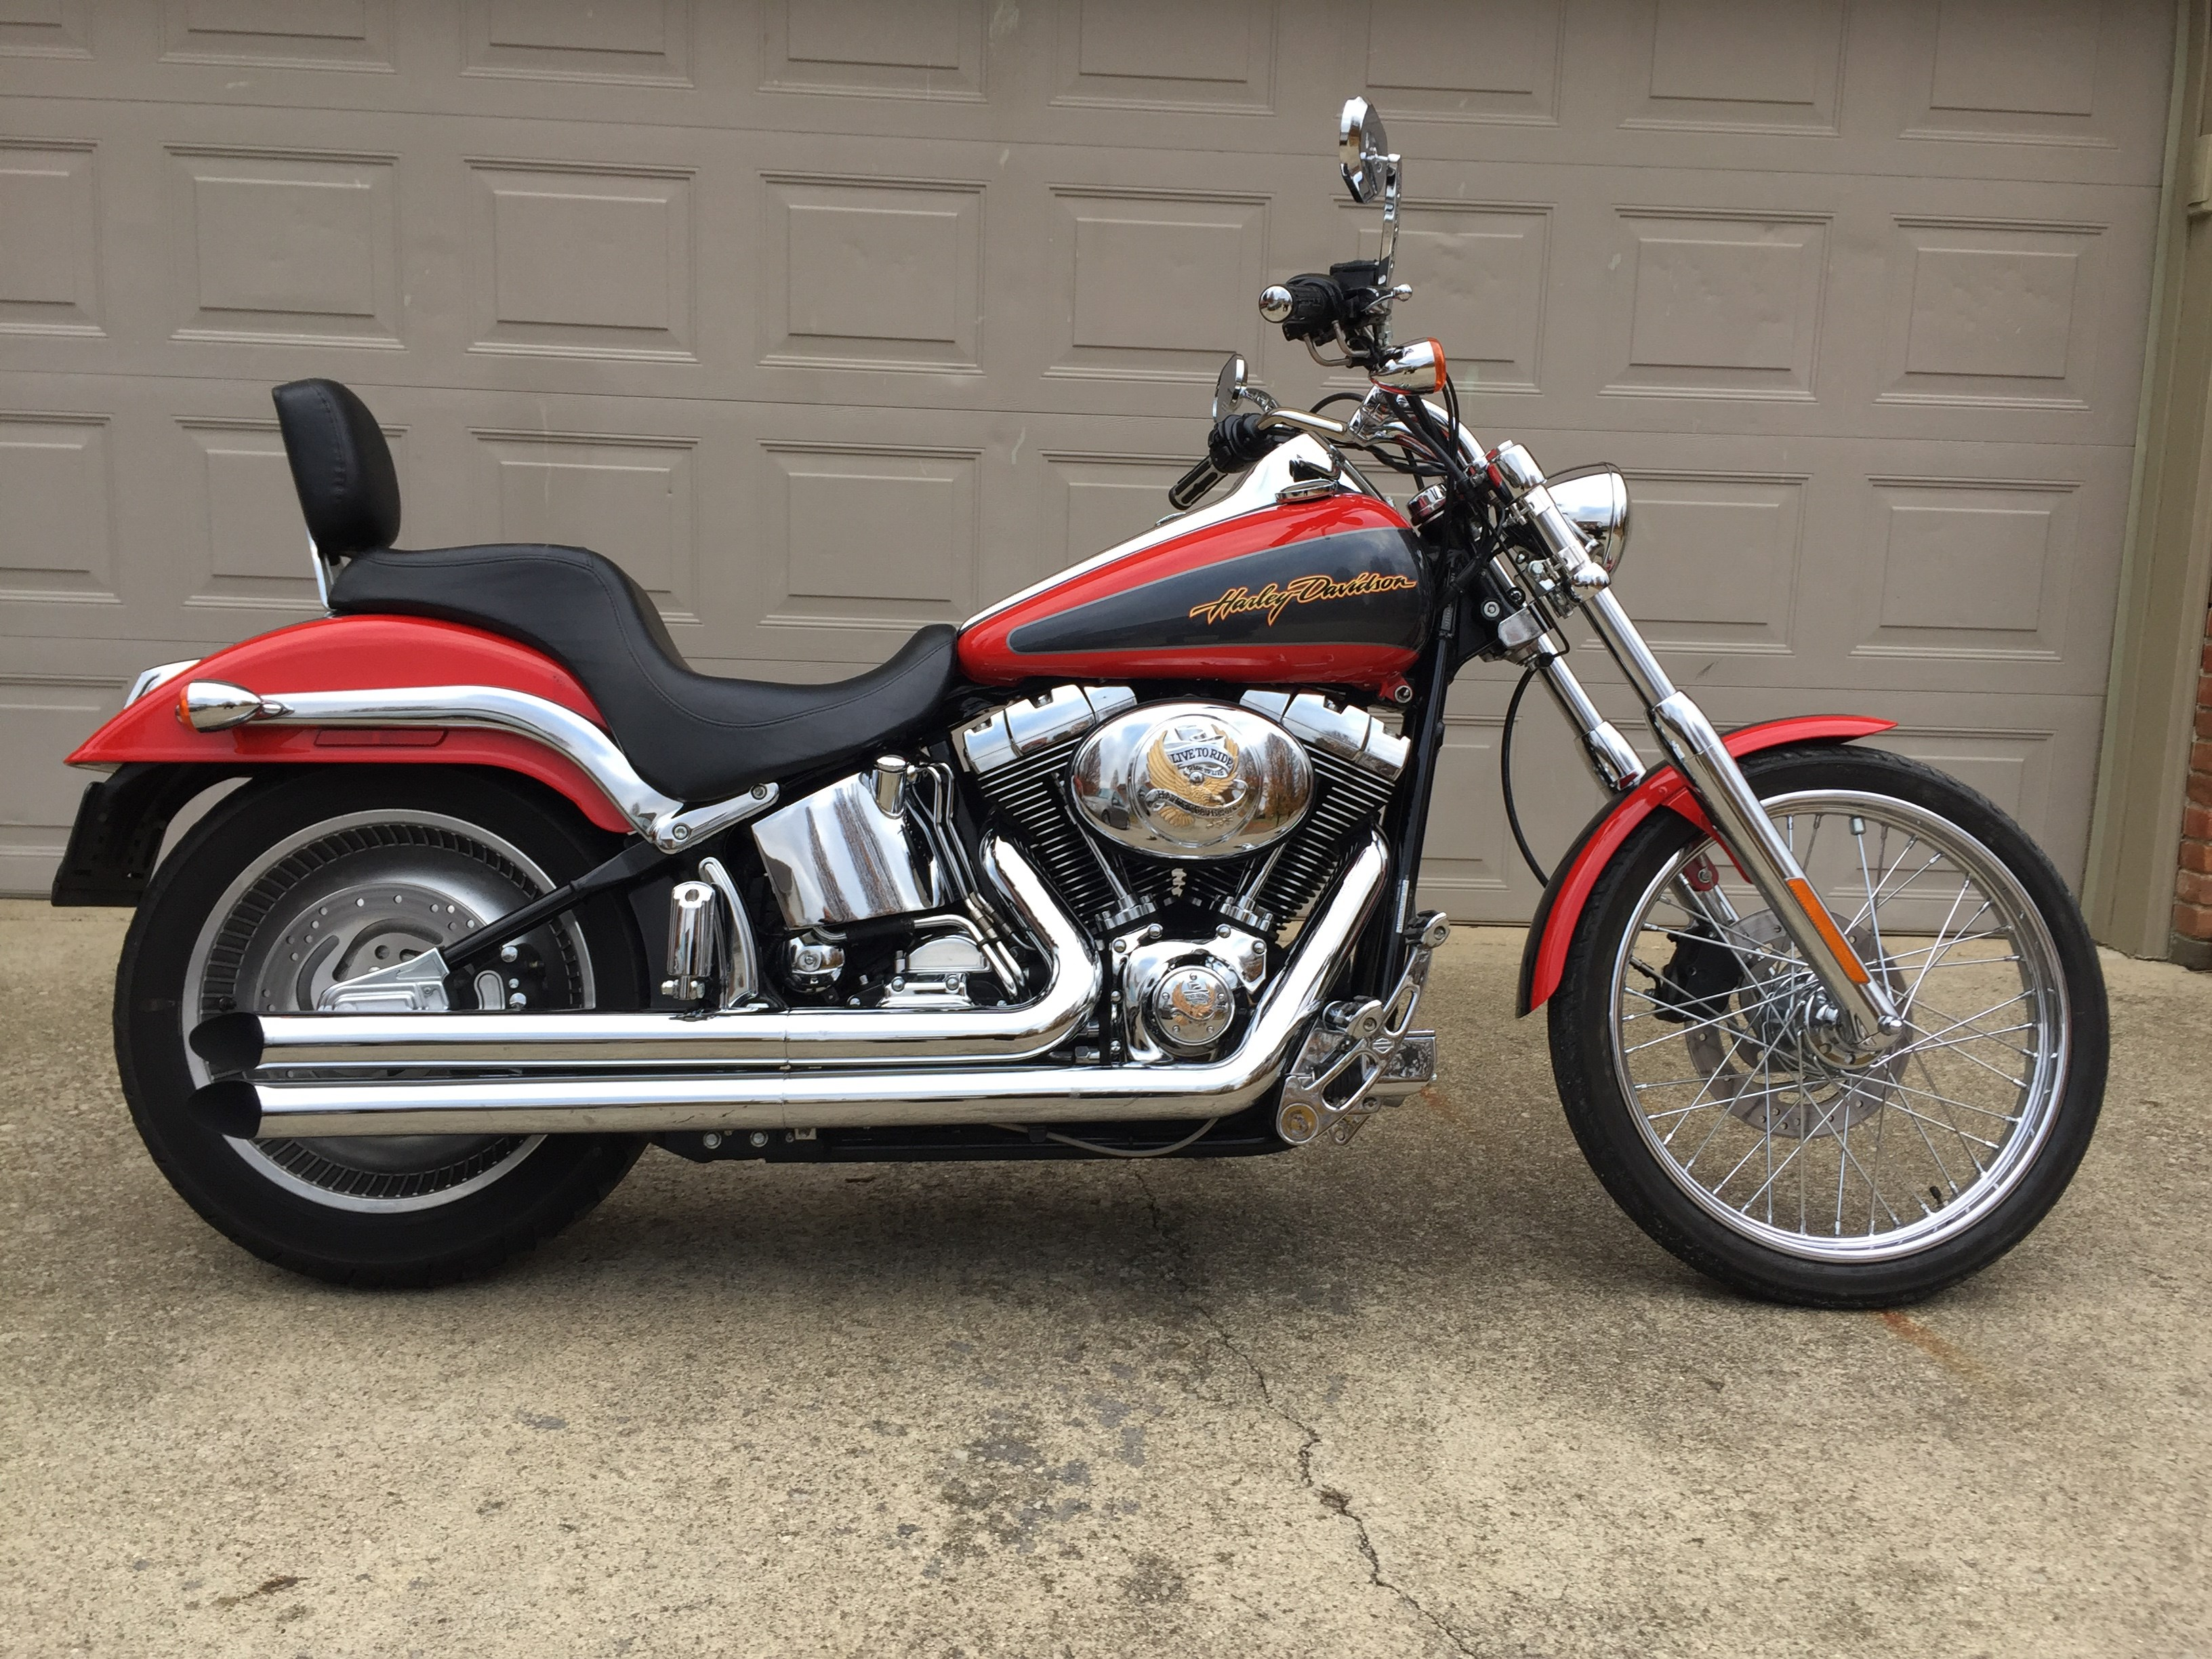 Used Cvo Street Glide For Sale Texas >> All New & Used Harley-Davidson® Softail Deuce™ For Sale (104 Bikes, Page 1) | ChopperExchange